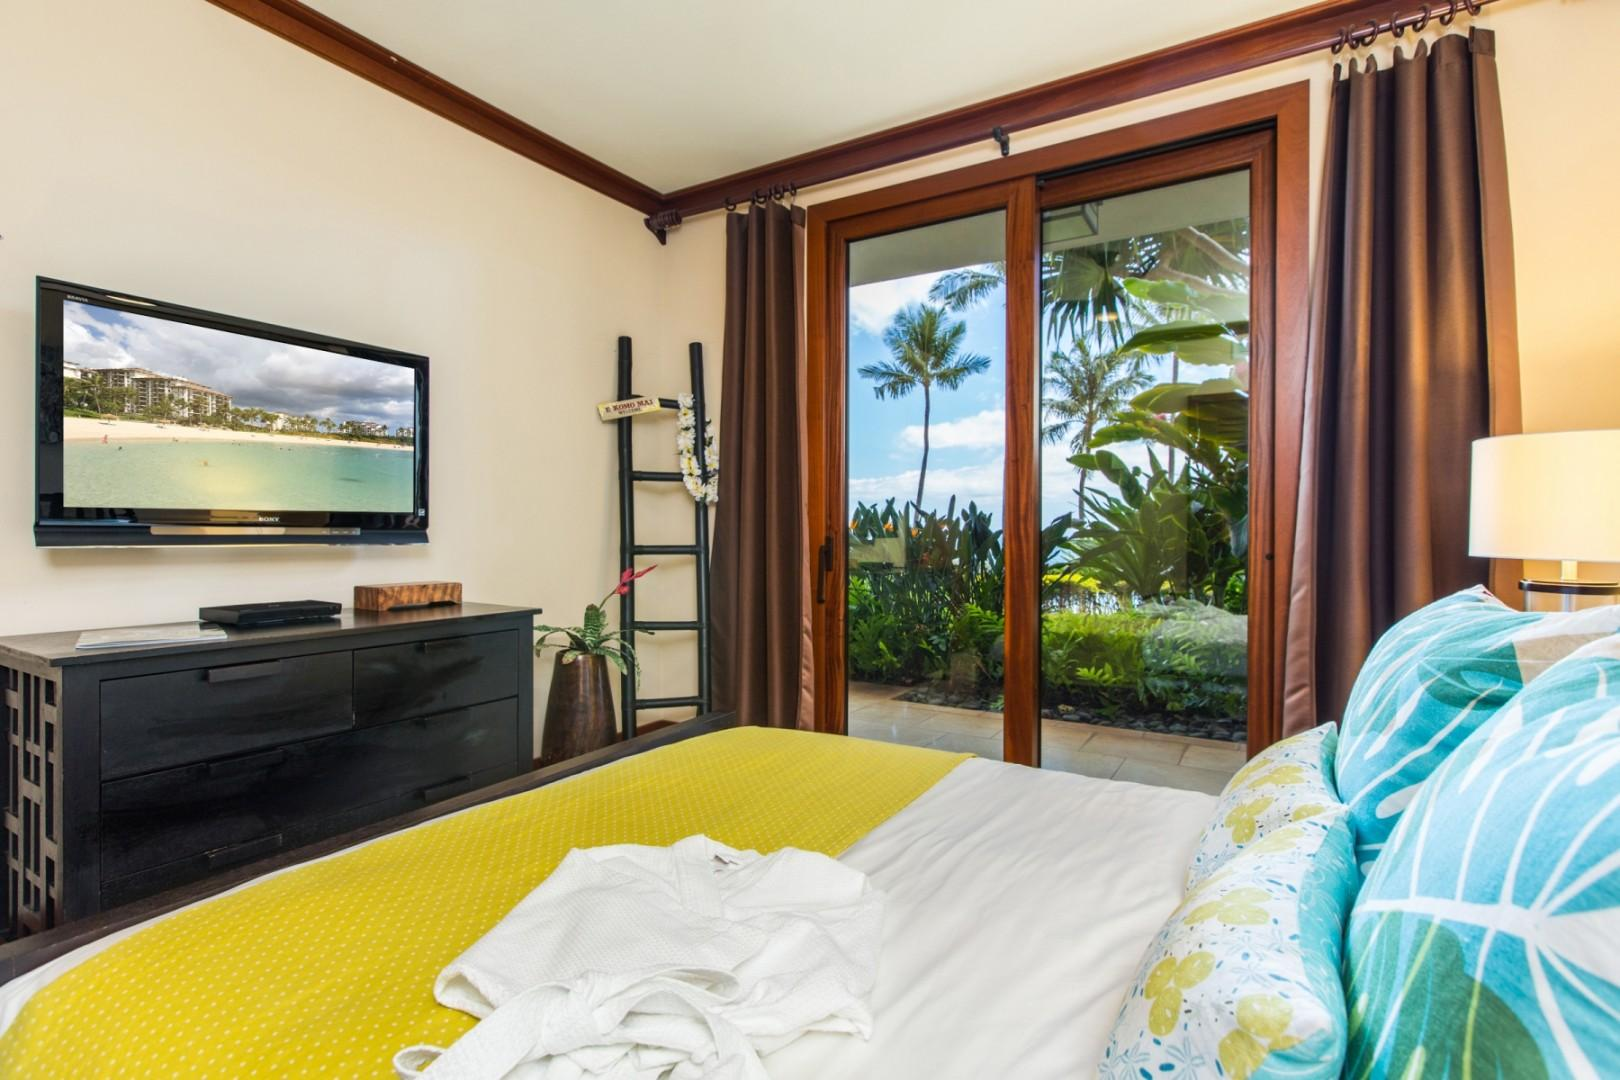 The 2nd (guest) bedroom with two twin beds which can be converted into a king features flat screen wall-mounted TV, BluRay DVD player, ceiling fan and lanai access (New photos featuring new beds coming soon)